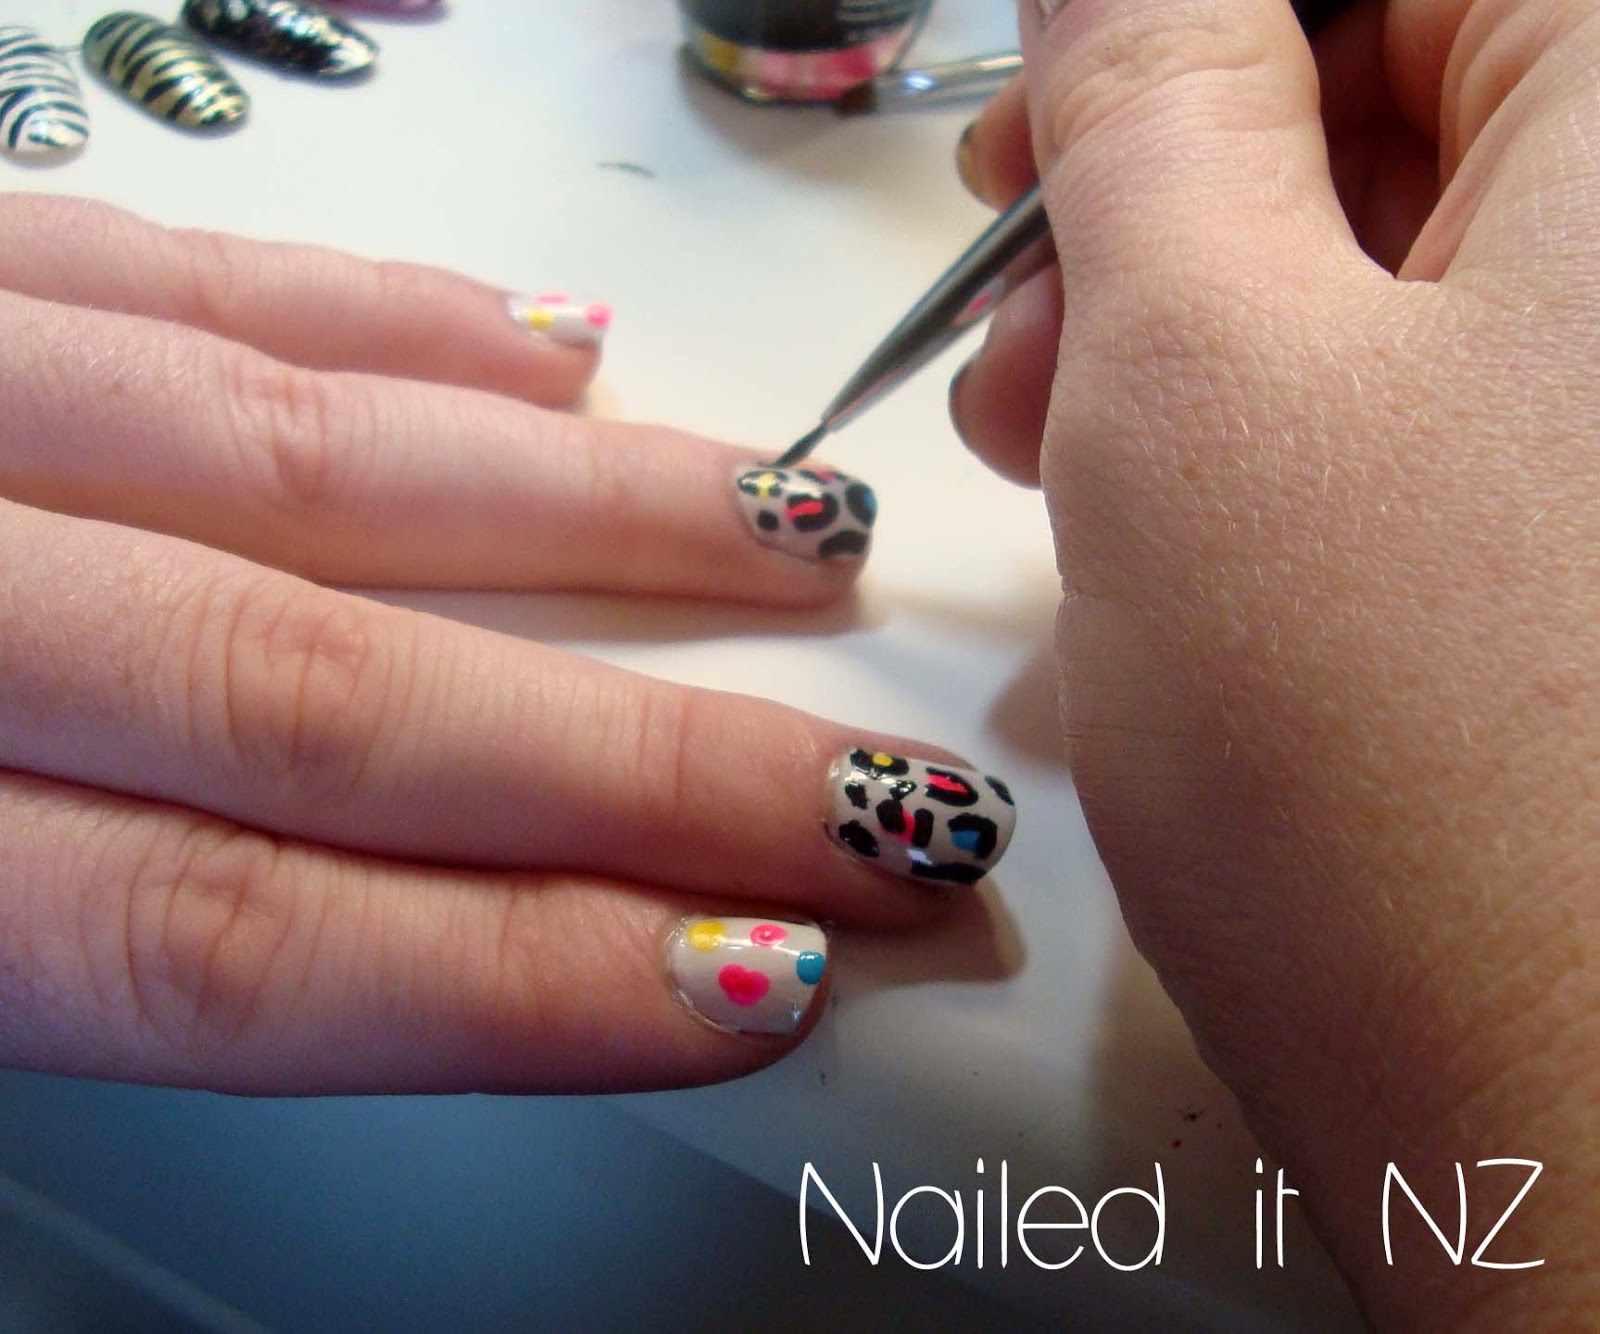 Teaching my friend nail art! Leopard print ☺